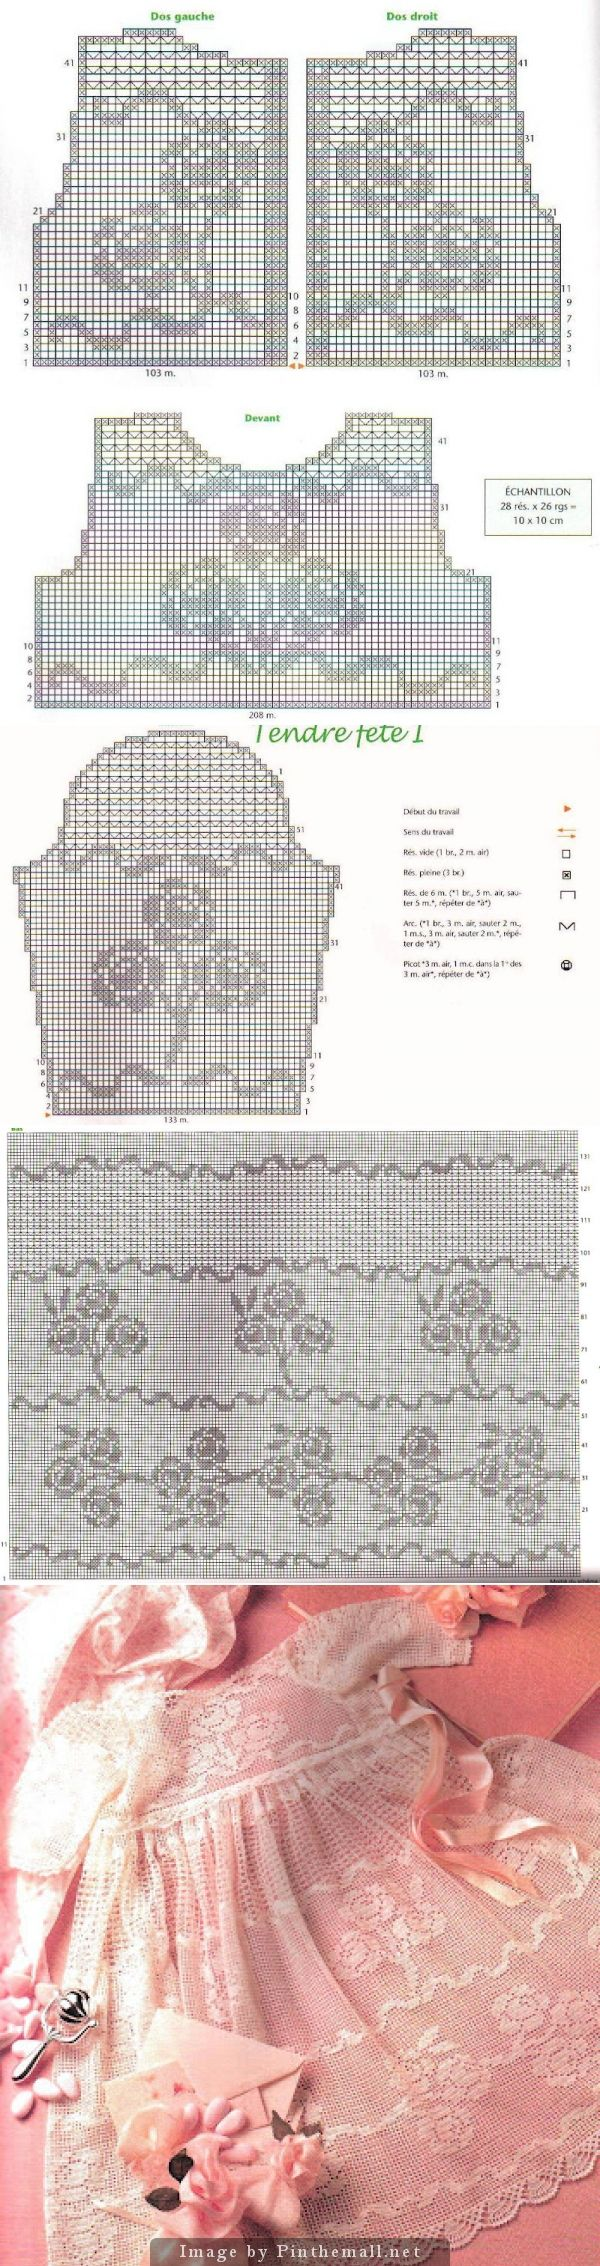 Lovely filet lace dress with roses ~~ http://marialopes-maria.blogspot.com/2012/10/em-crochet-filet-com-grafico-eu-adoro.html